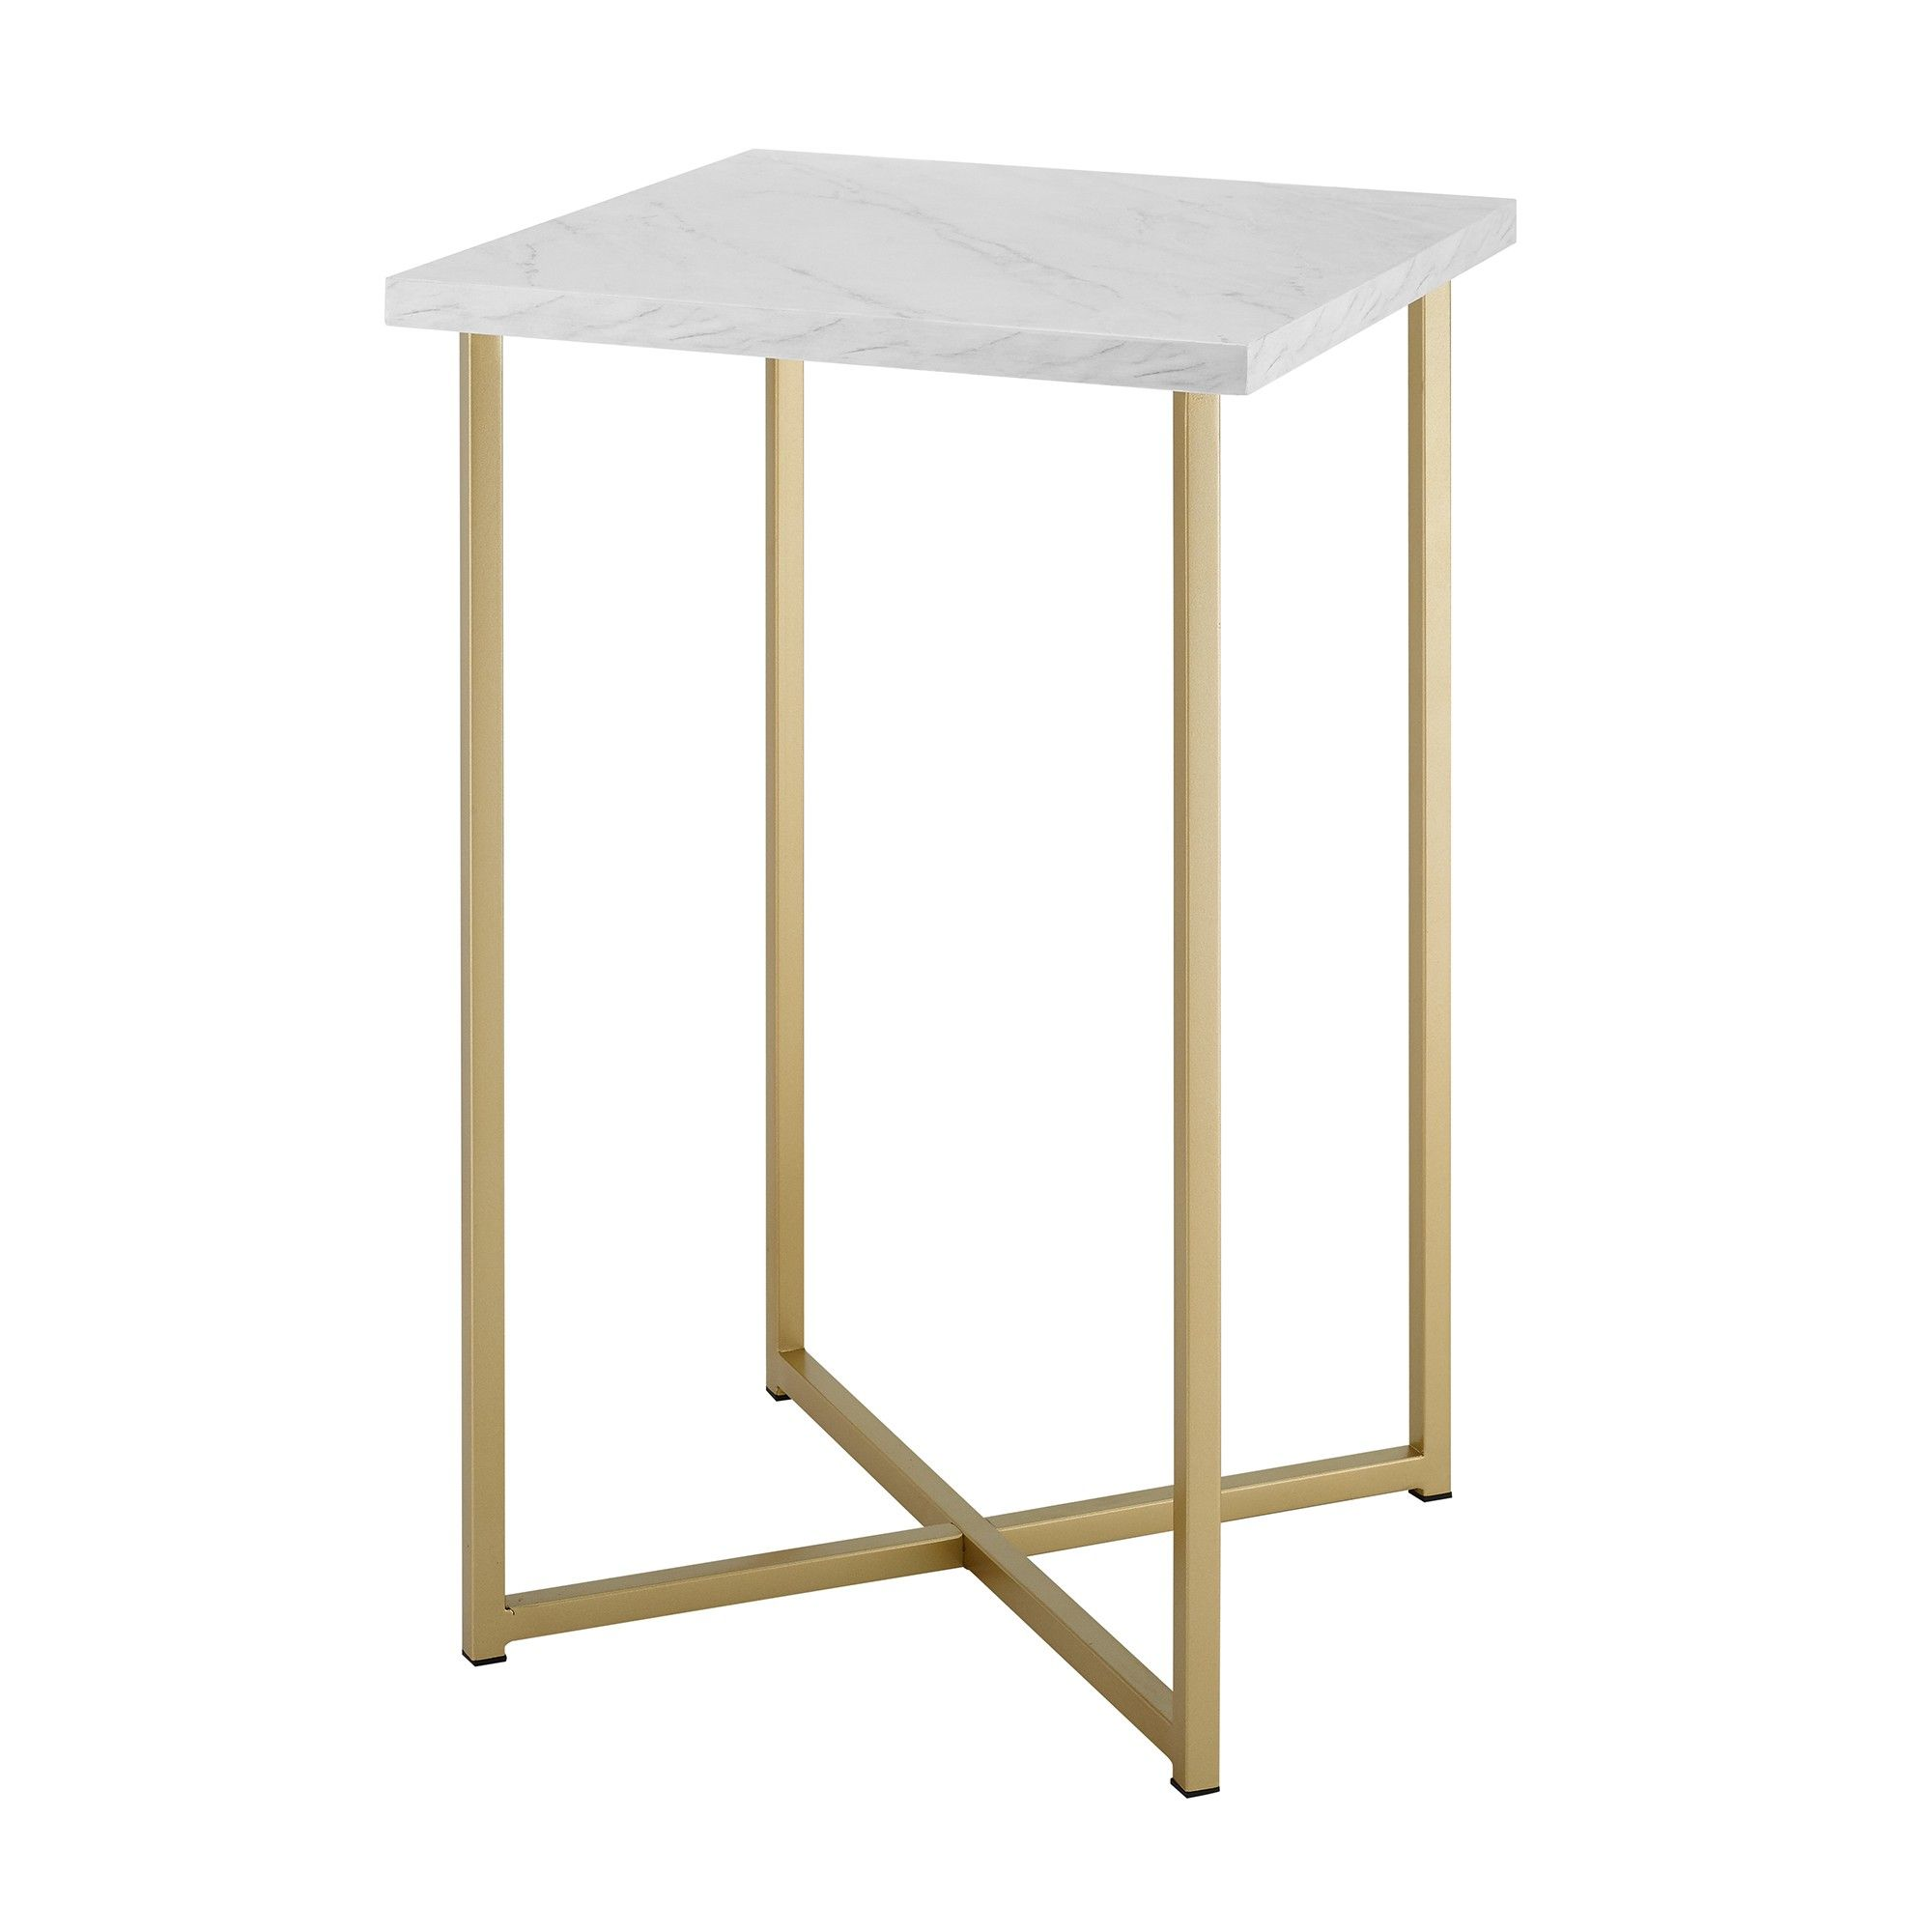 Homeroots Julia Agate Gold Stone Round End Table 364651 White Accent Table Side Table White Side Tables